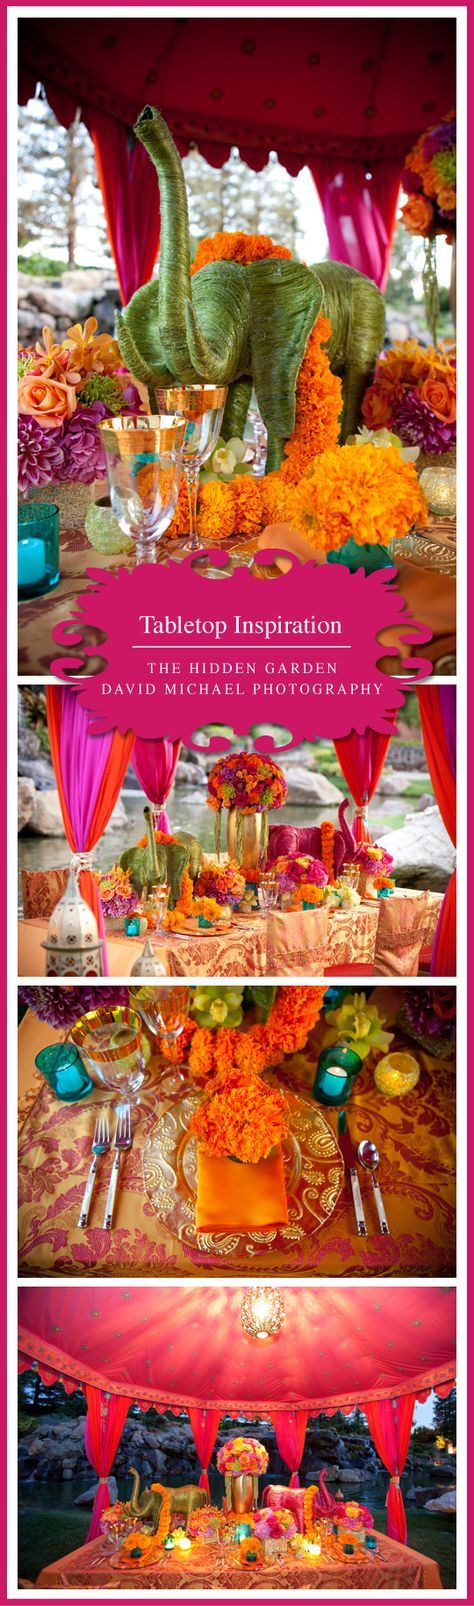 Tabletop Inspiration | Indian Elegance www.tablescapesbydesign.com https://www.facebook.com/pages/Tablescapes-By-Design/129811416695